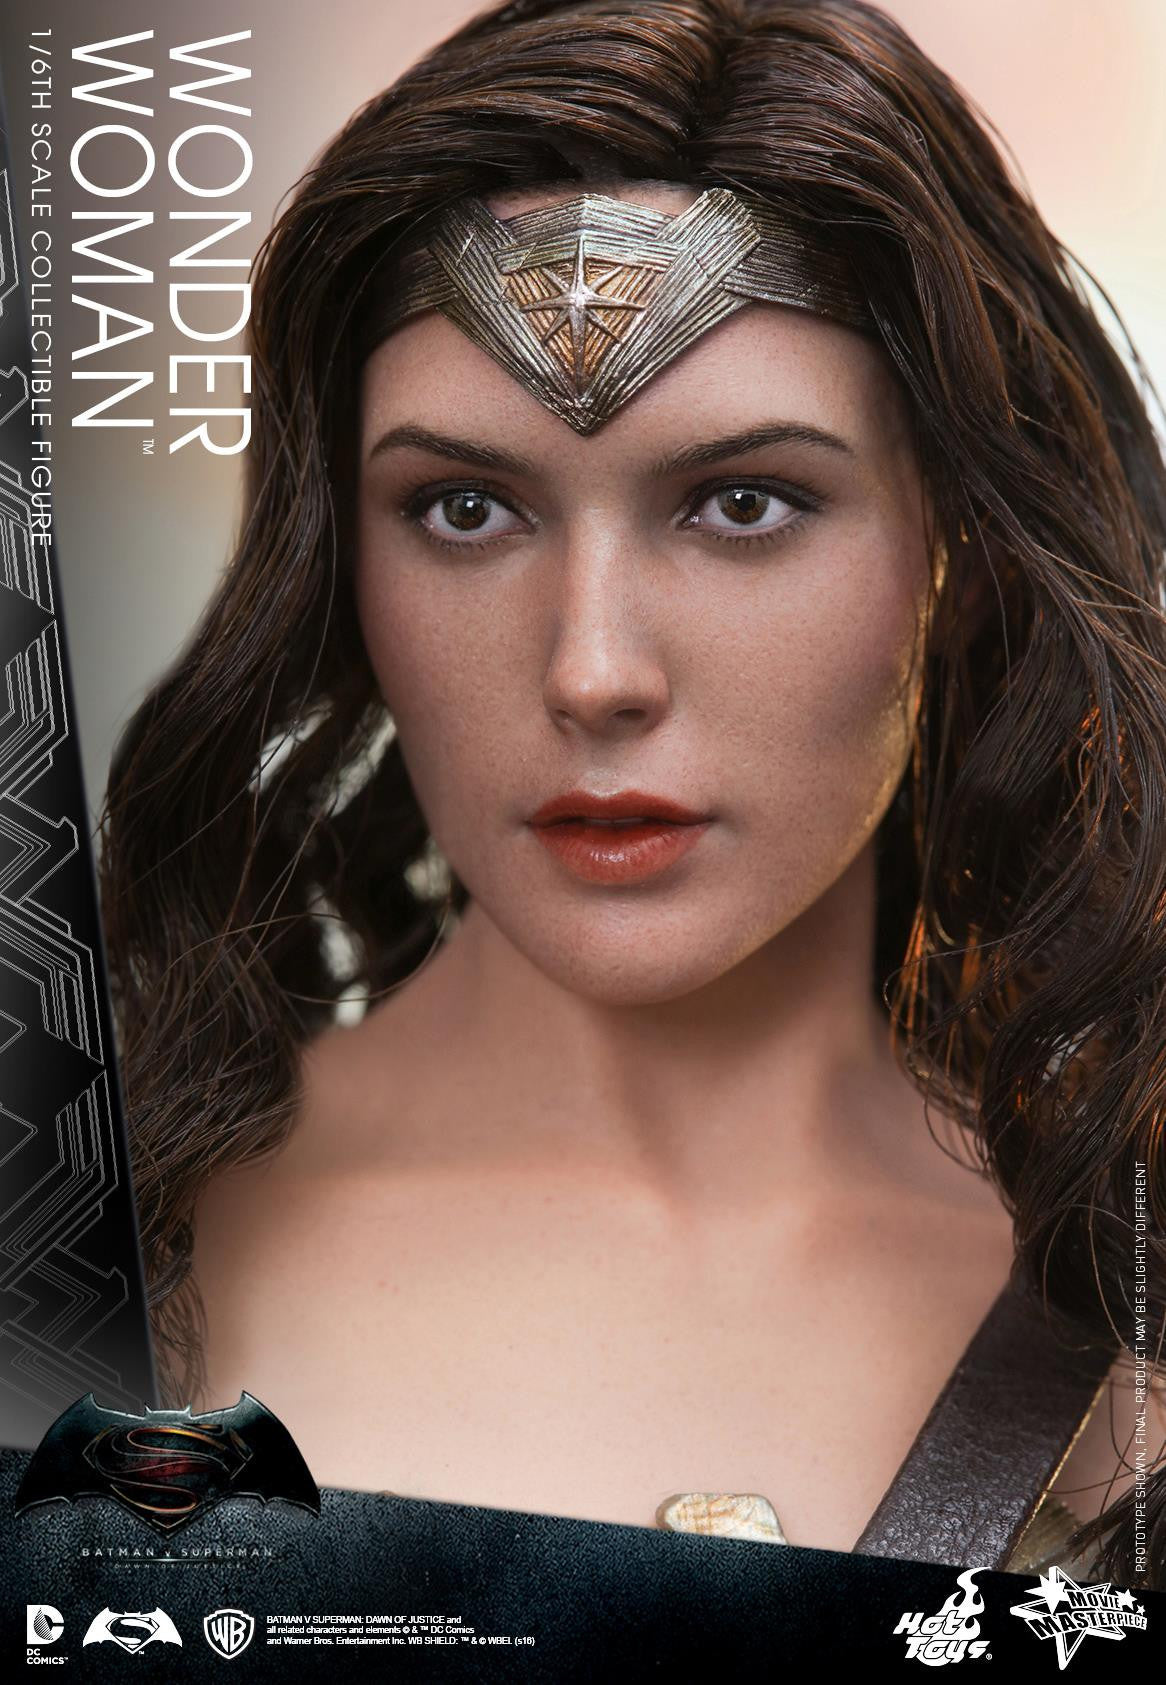 Hot Toys - Batman v Superman: Dawn of Justice - Wonder Woman MMS359 - Marvelous Toys - 8